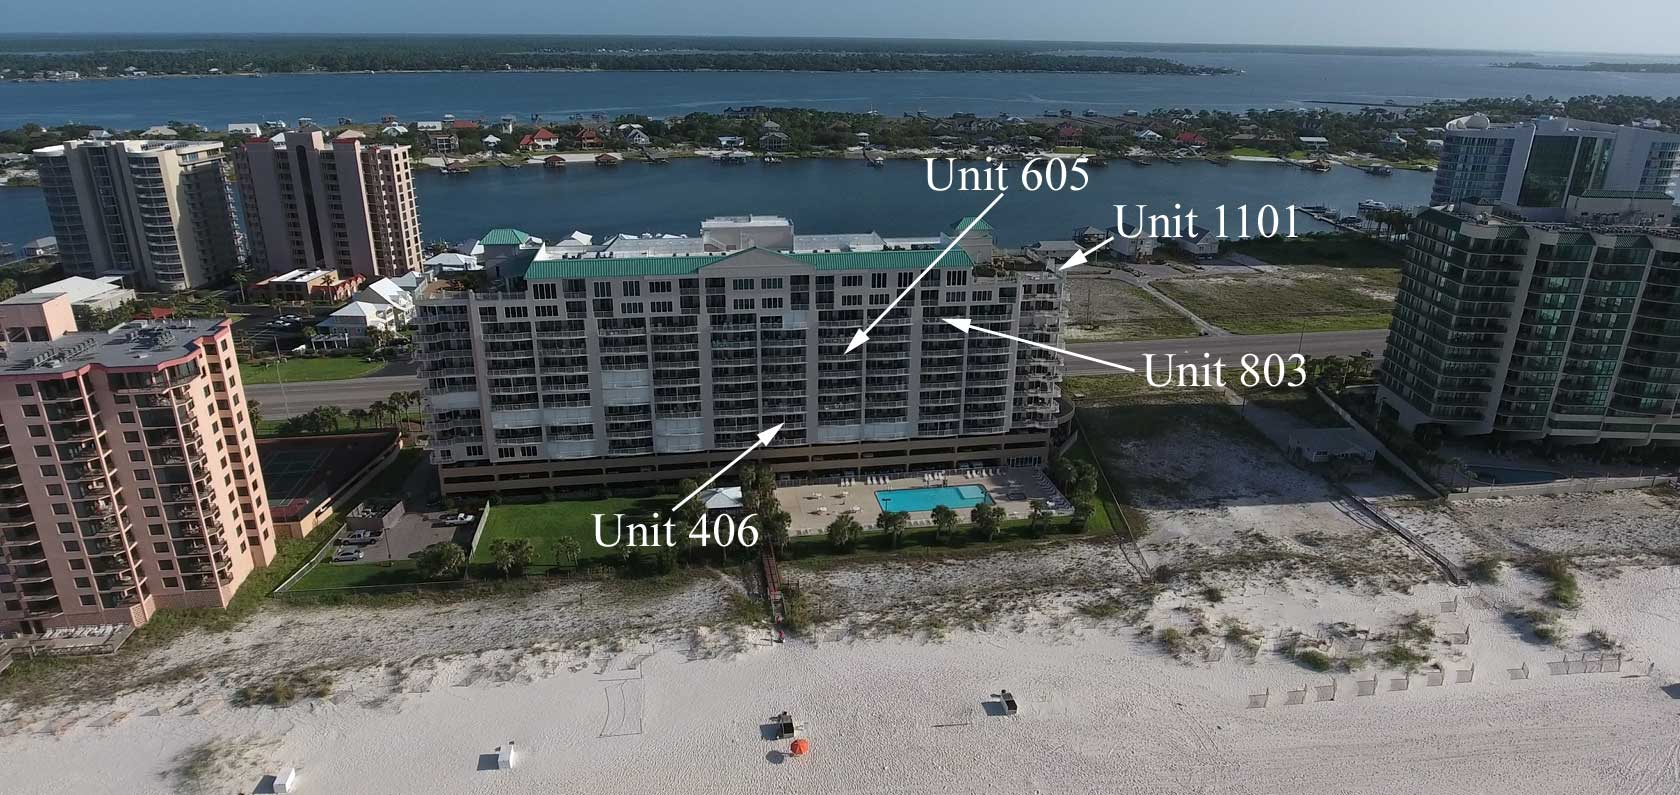 Aerial image of Regency Isle rental condos